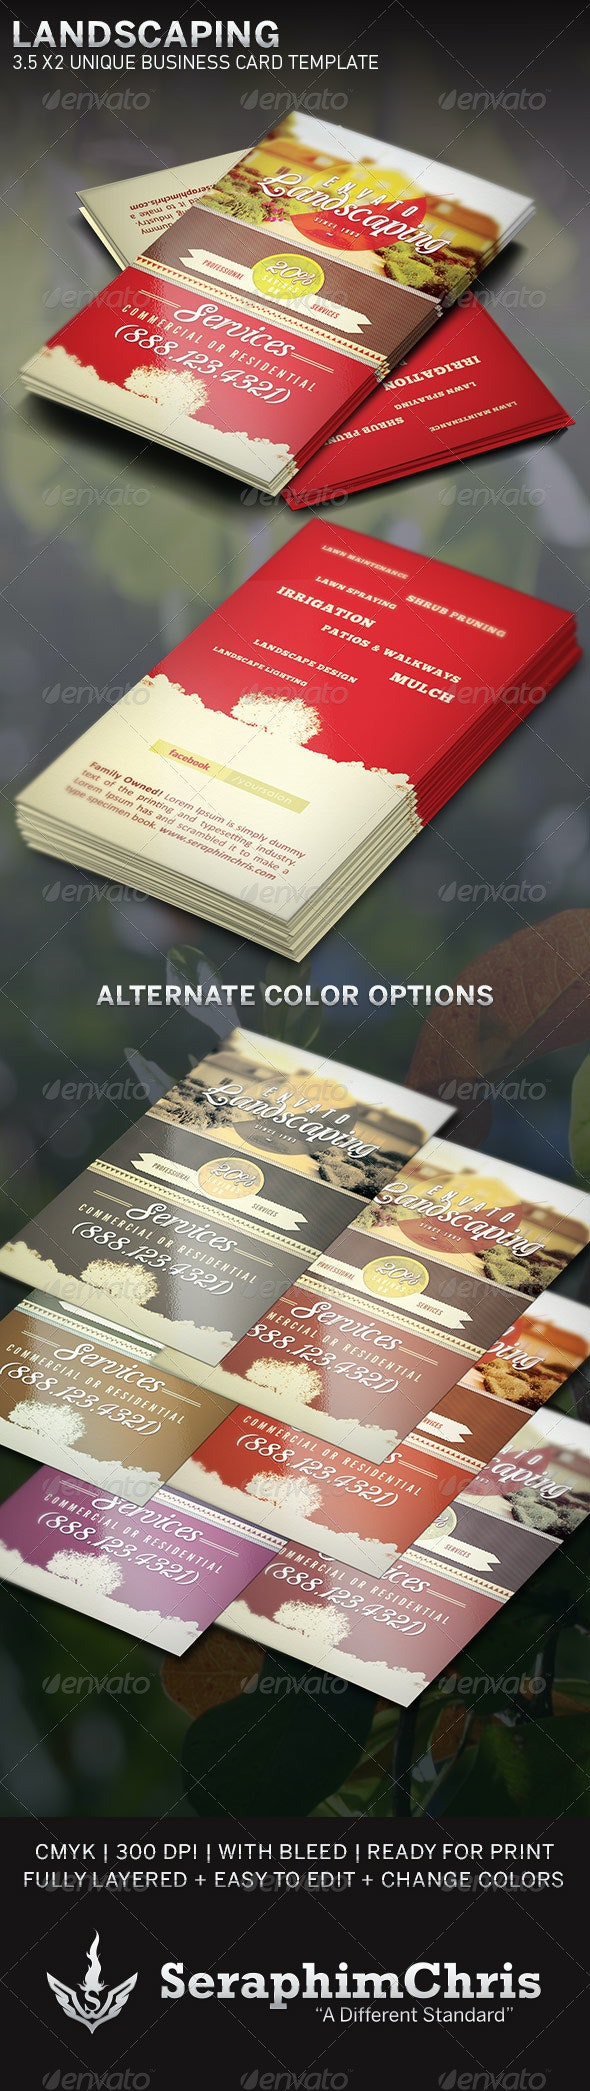 Landscaping: Business Card Template - Industry Specific Business Cards